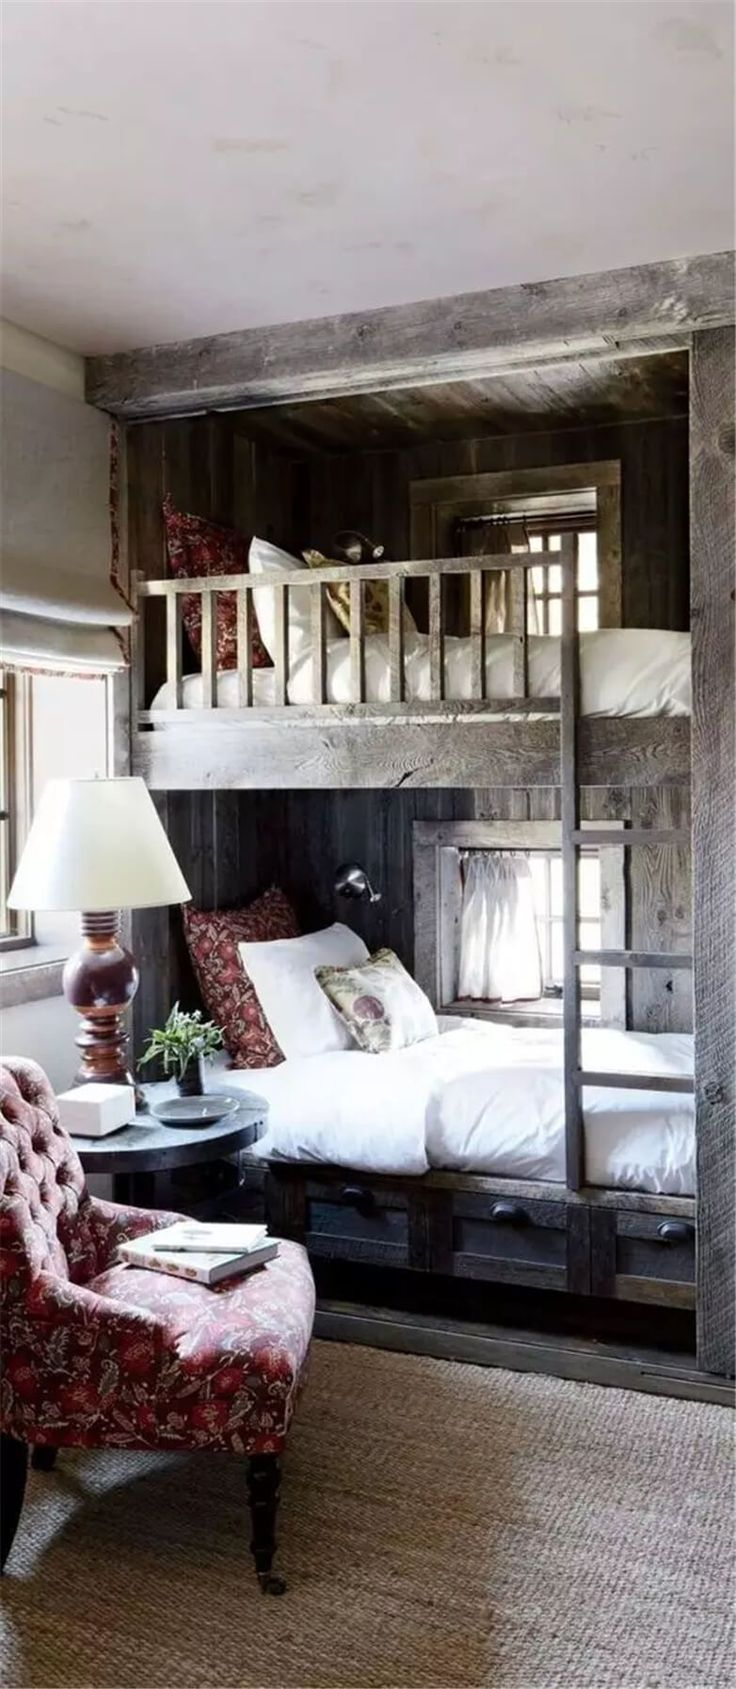 Beds For Small Places Best 25 Beds For Small Spaces Ideas Only On Pinterest  Murphy